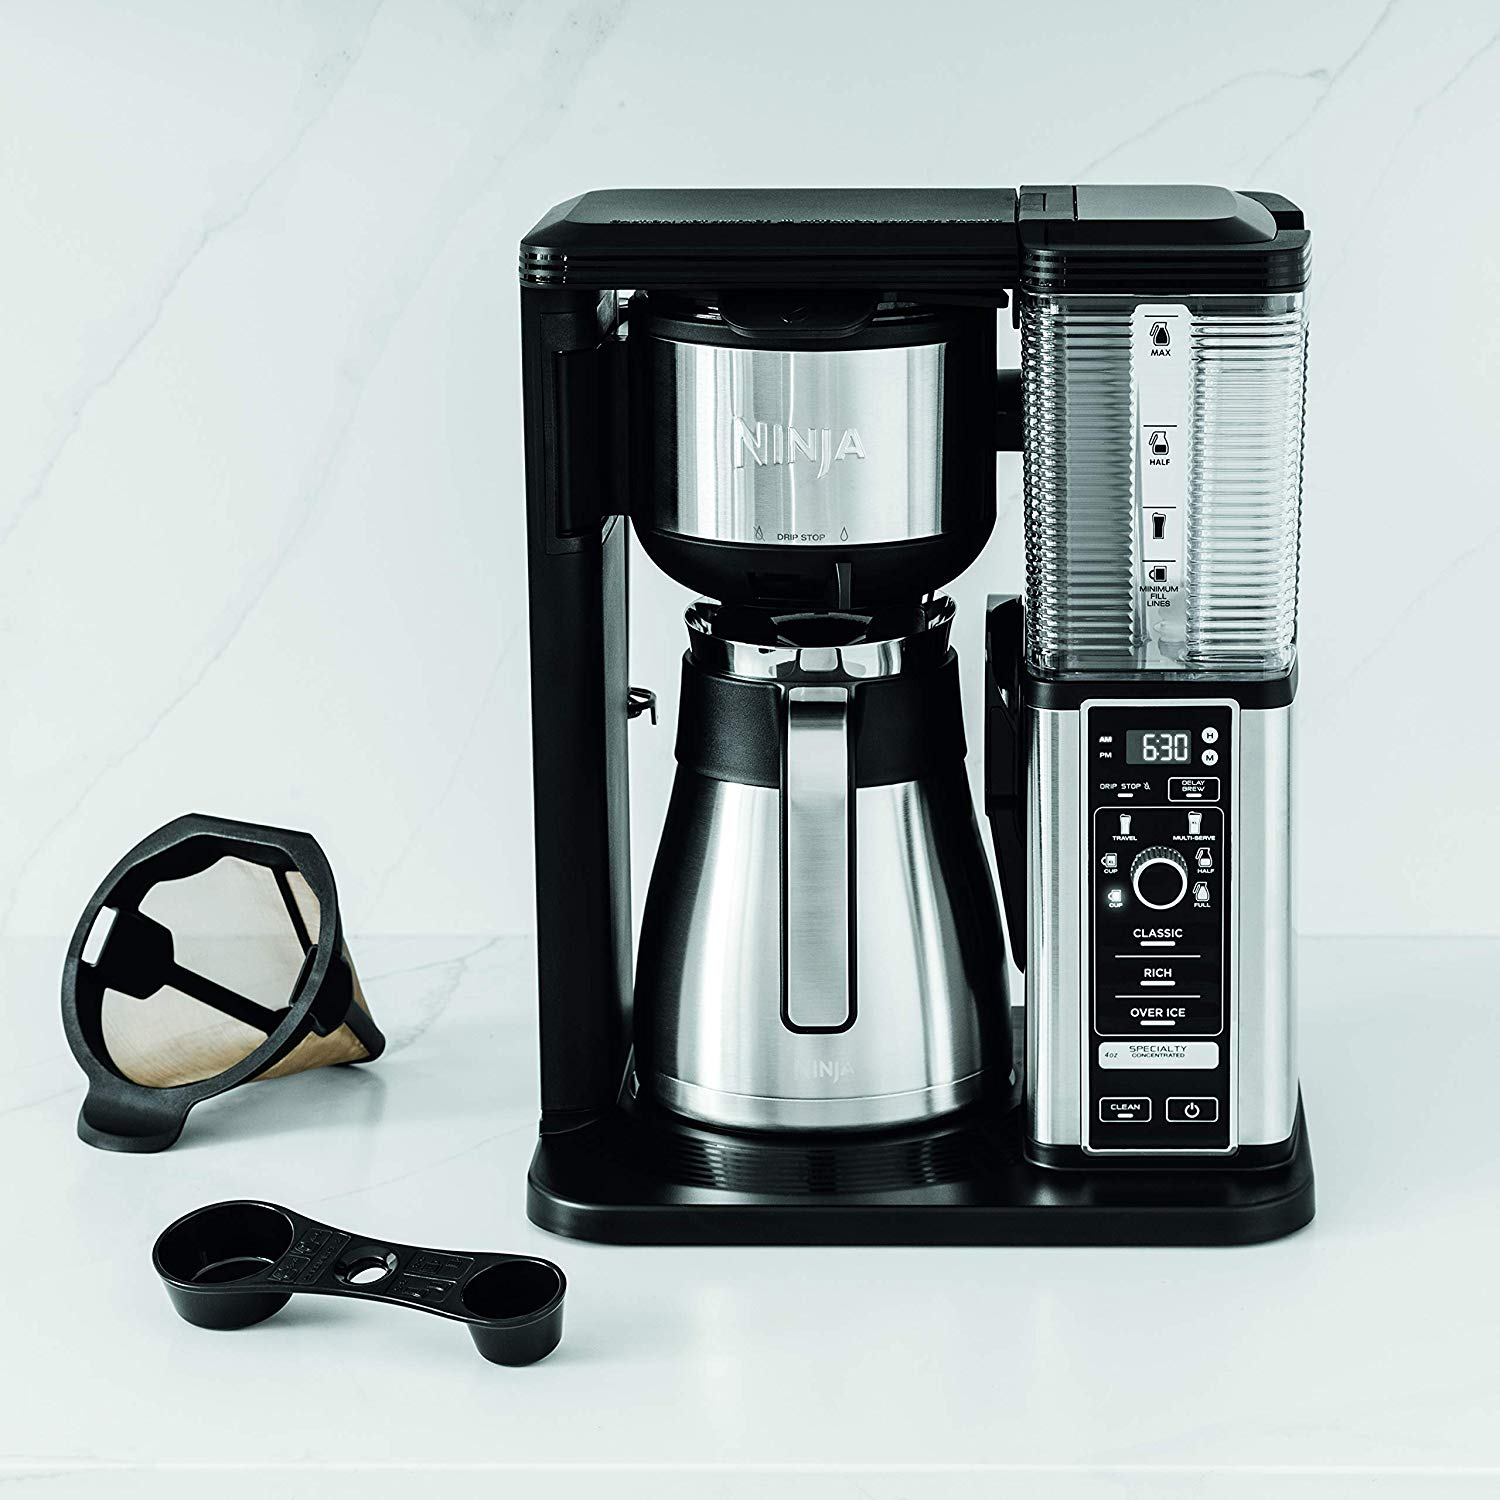 Ninja Specialty Fold-Away Frother (CM407) Coffee Maker ...